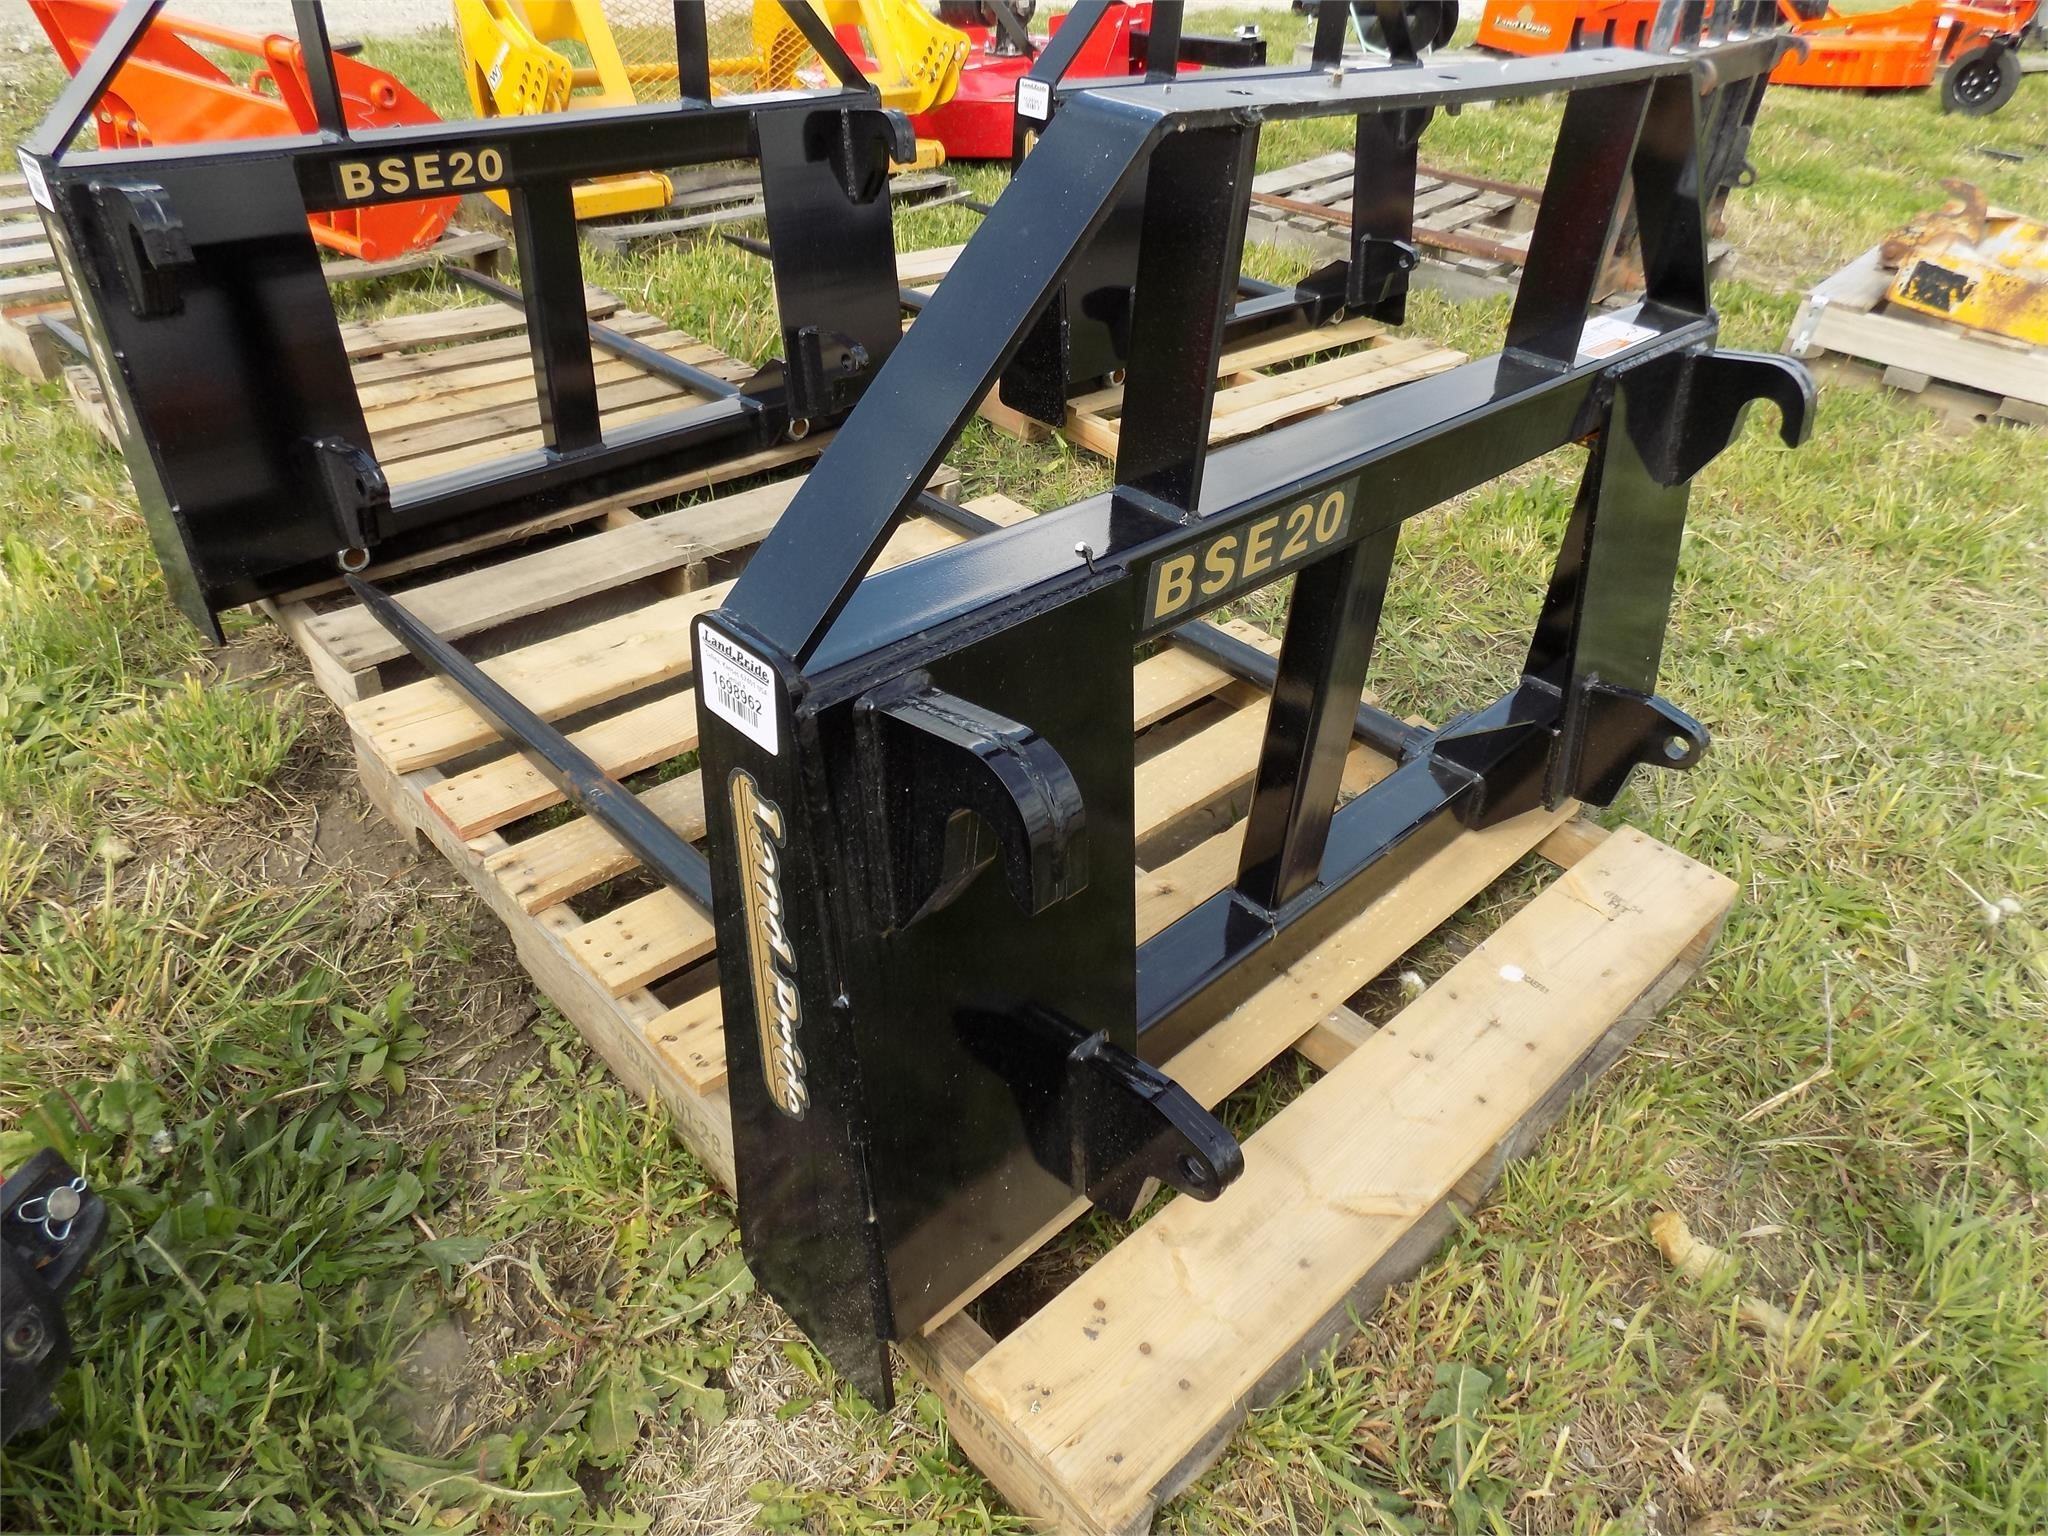 2021 Land Pride BSE20 Loader and Skid Steer Attachment